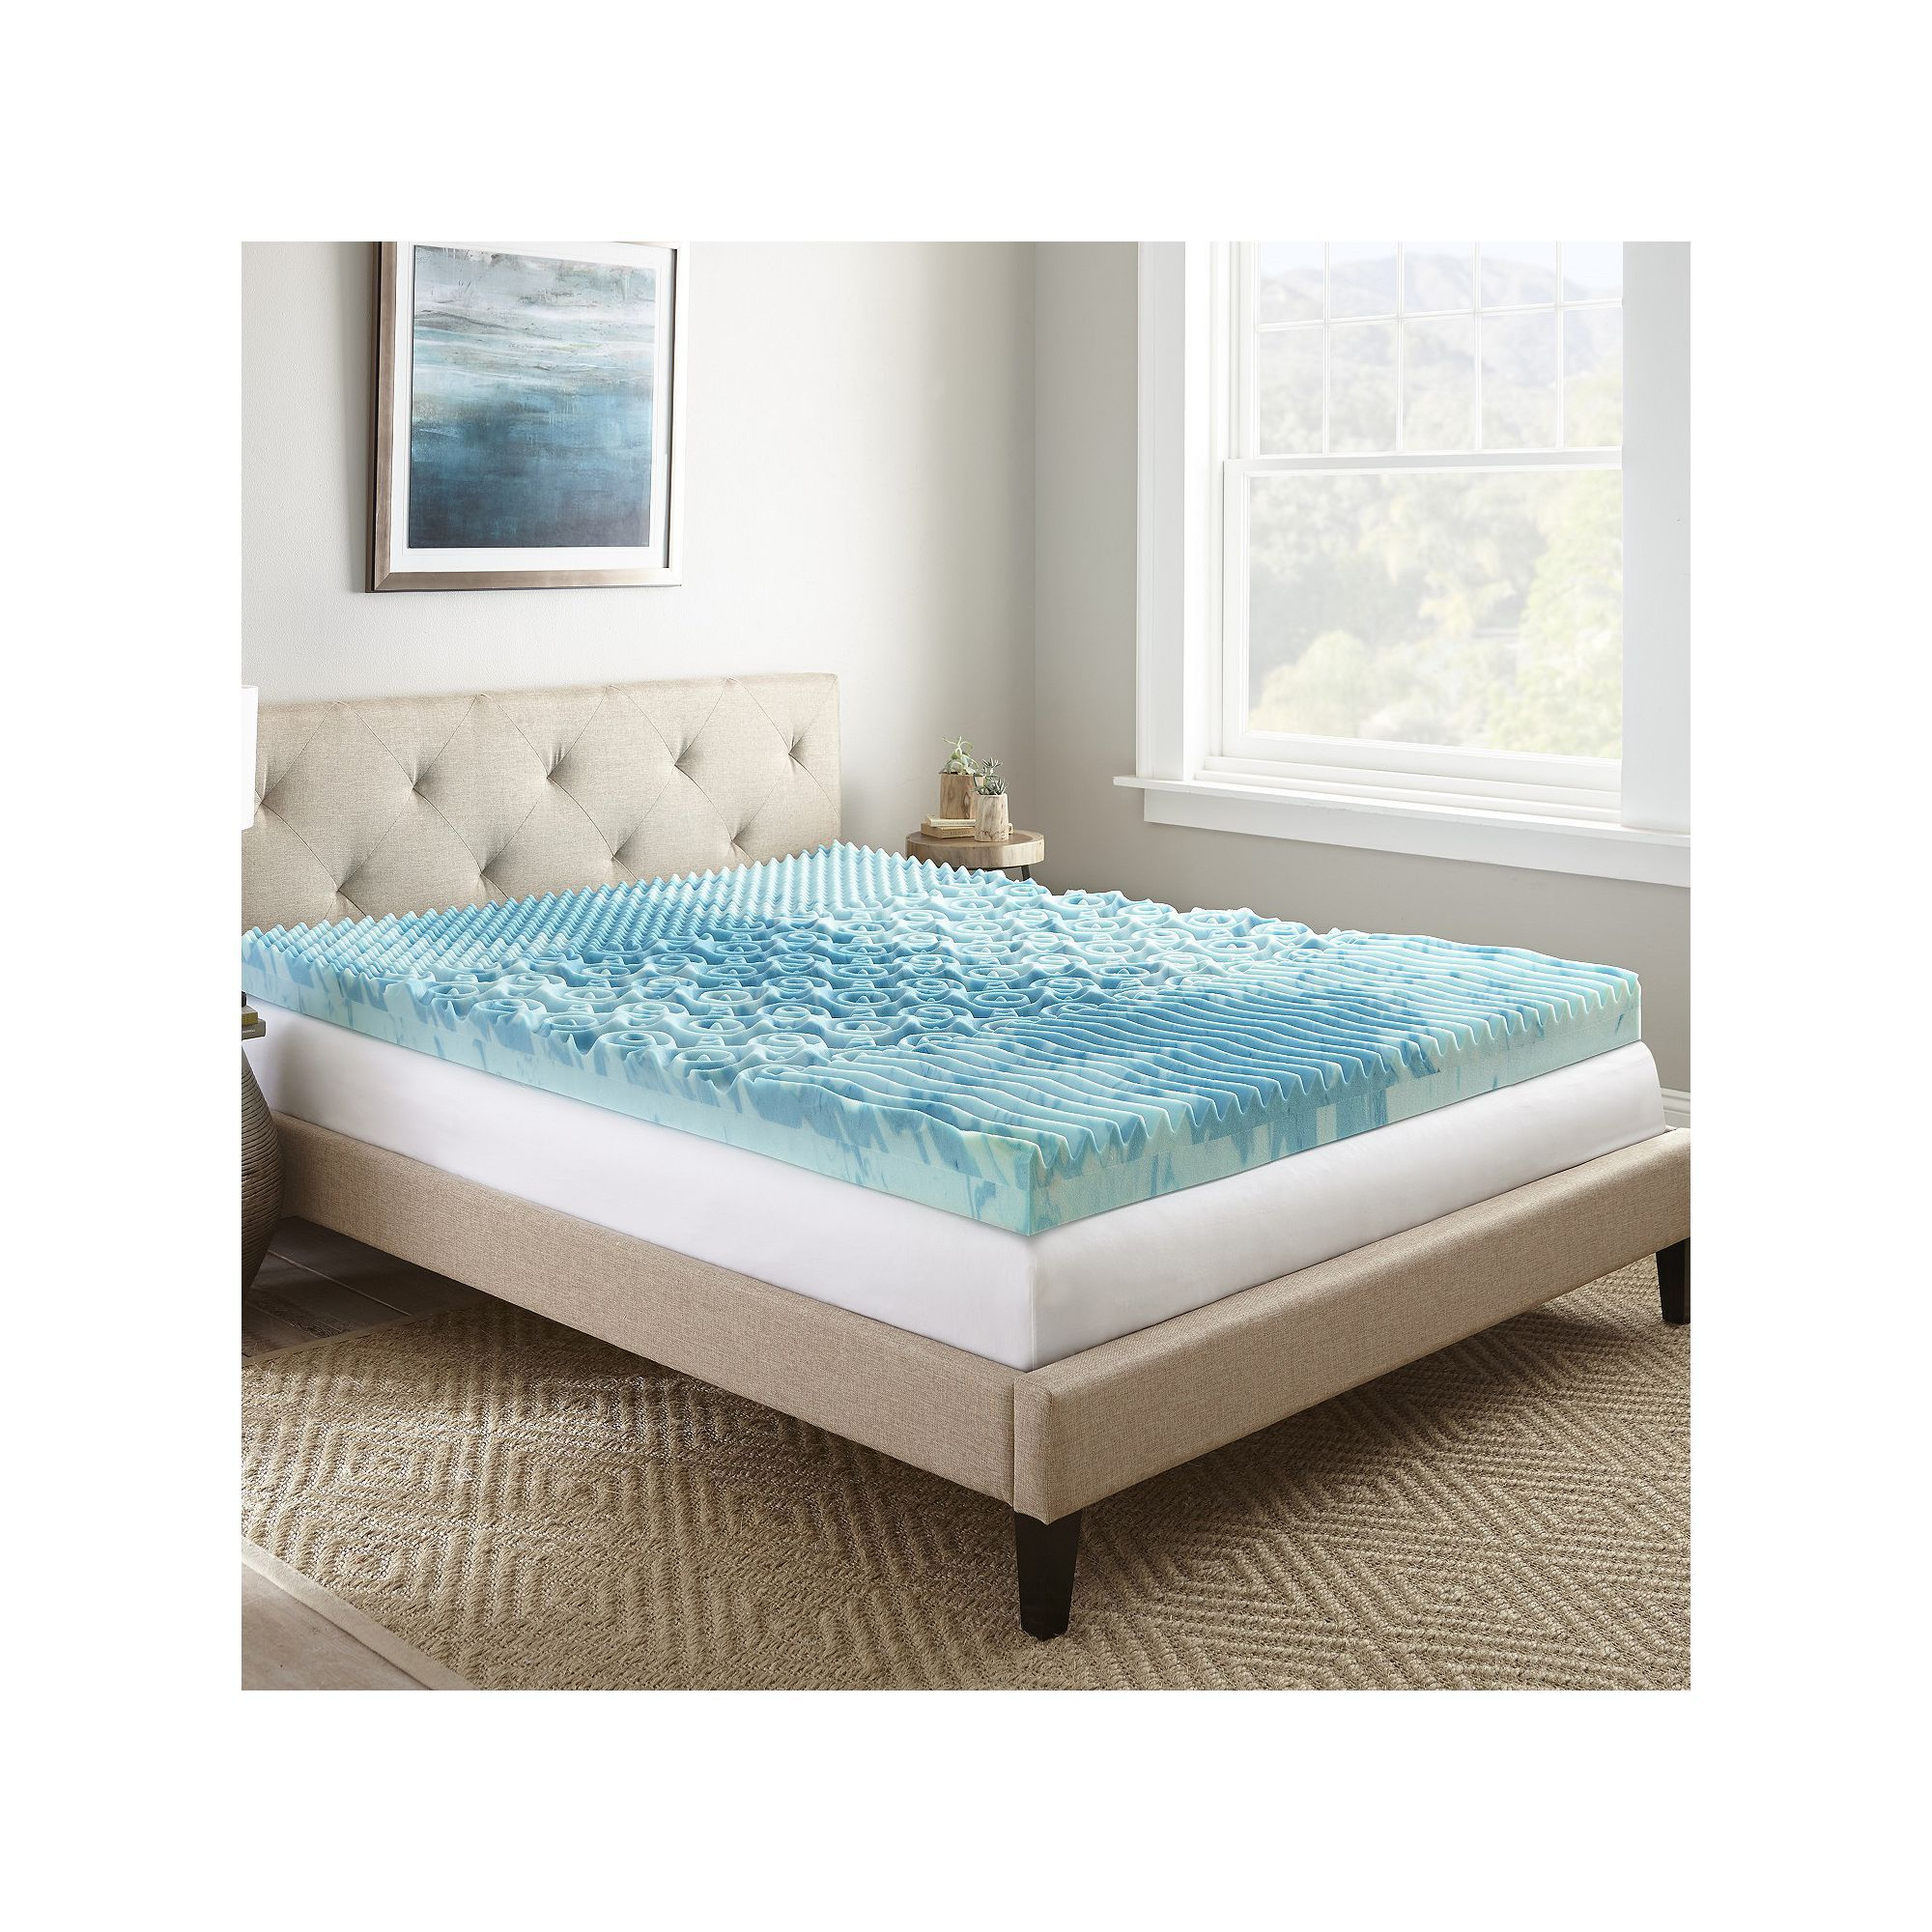 bath foam free shipping mattress conventional today inch splendorest overstock product topper bedding